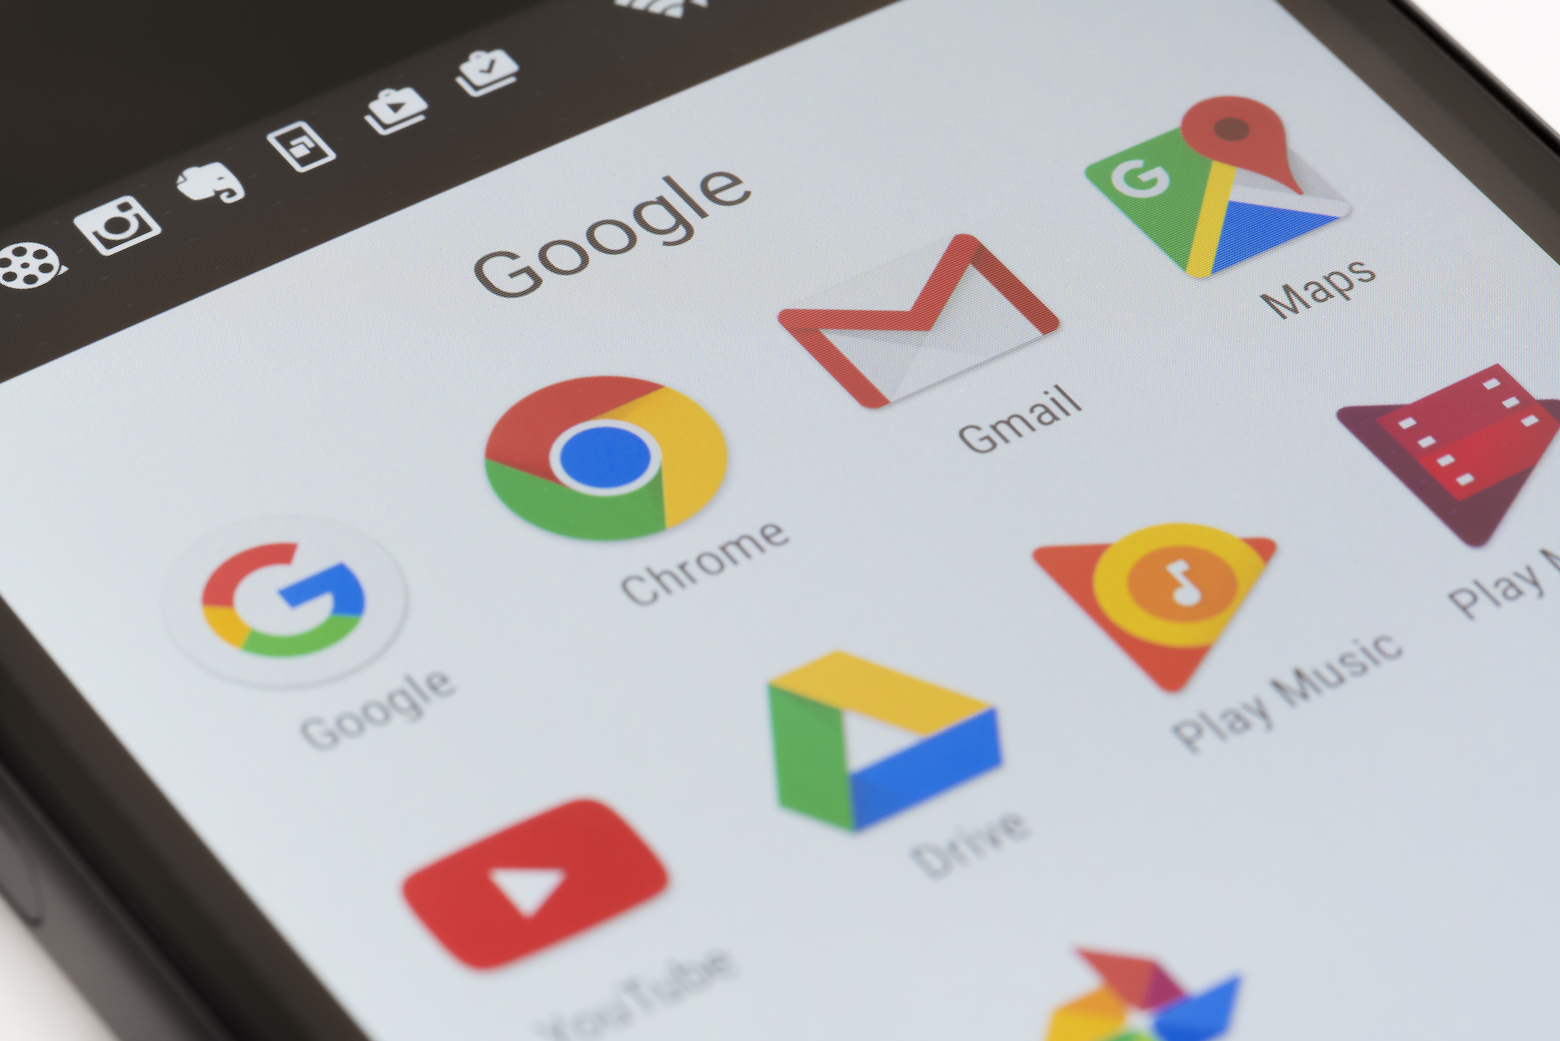 Google Fixed That Scary Google Docs Attack But It Can Still Happen Again Bgr